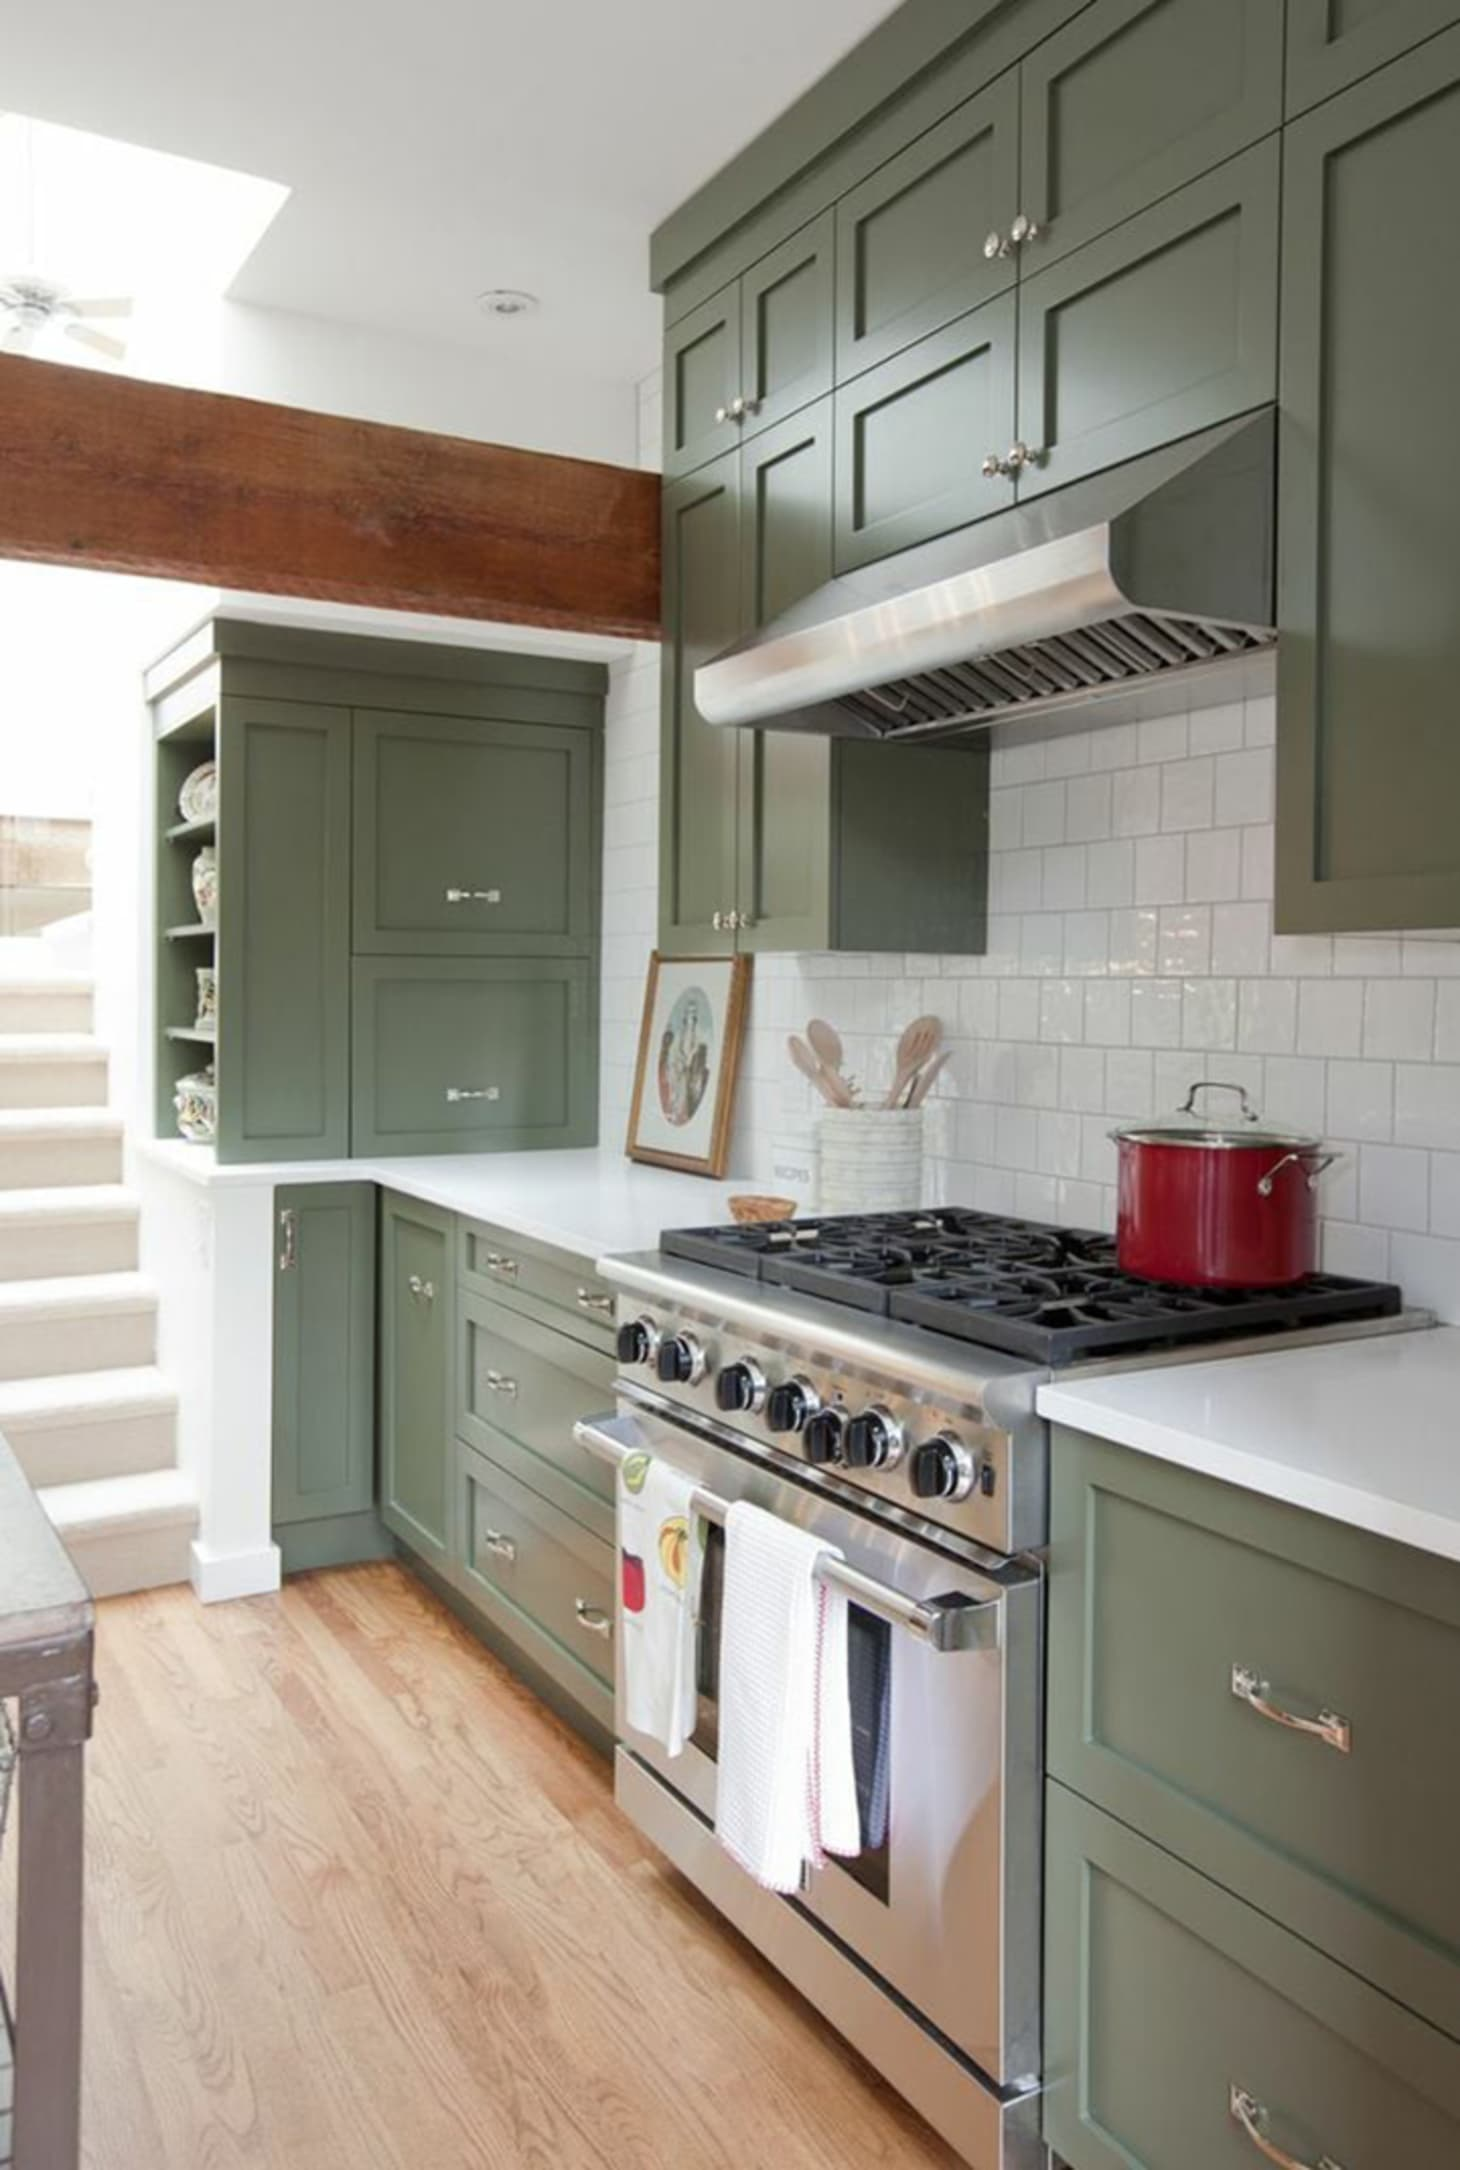 Green Painted Kitchen Cabinets We Love Right Now | Apartment ...